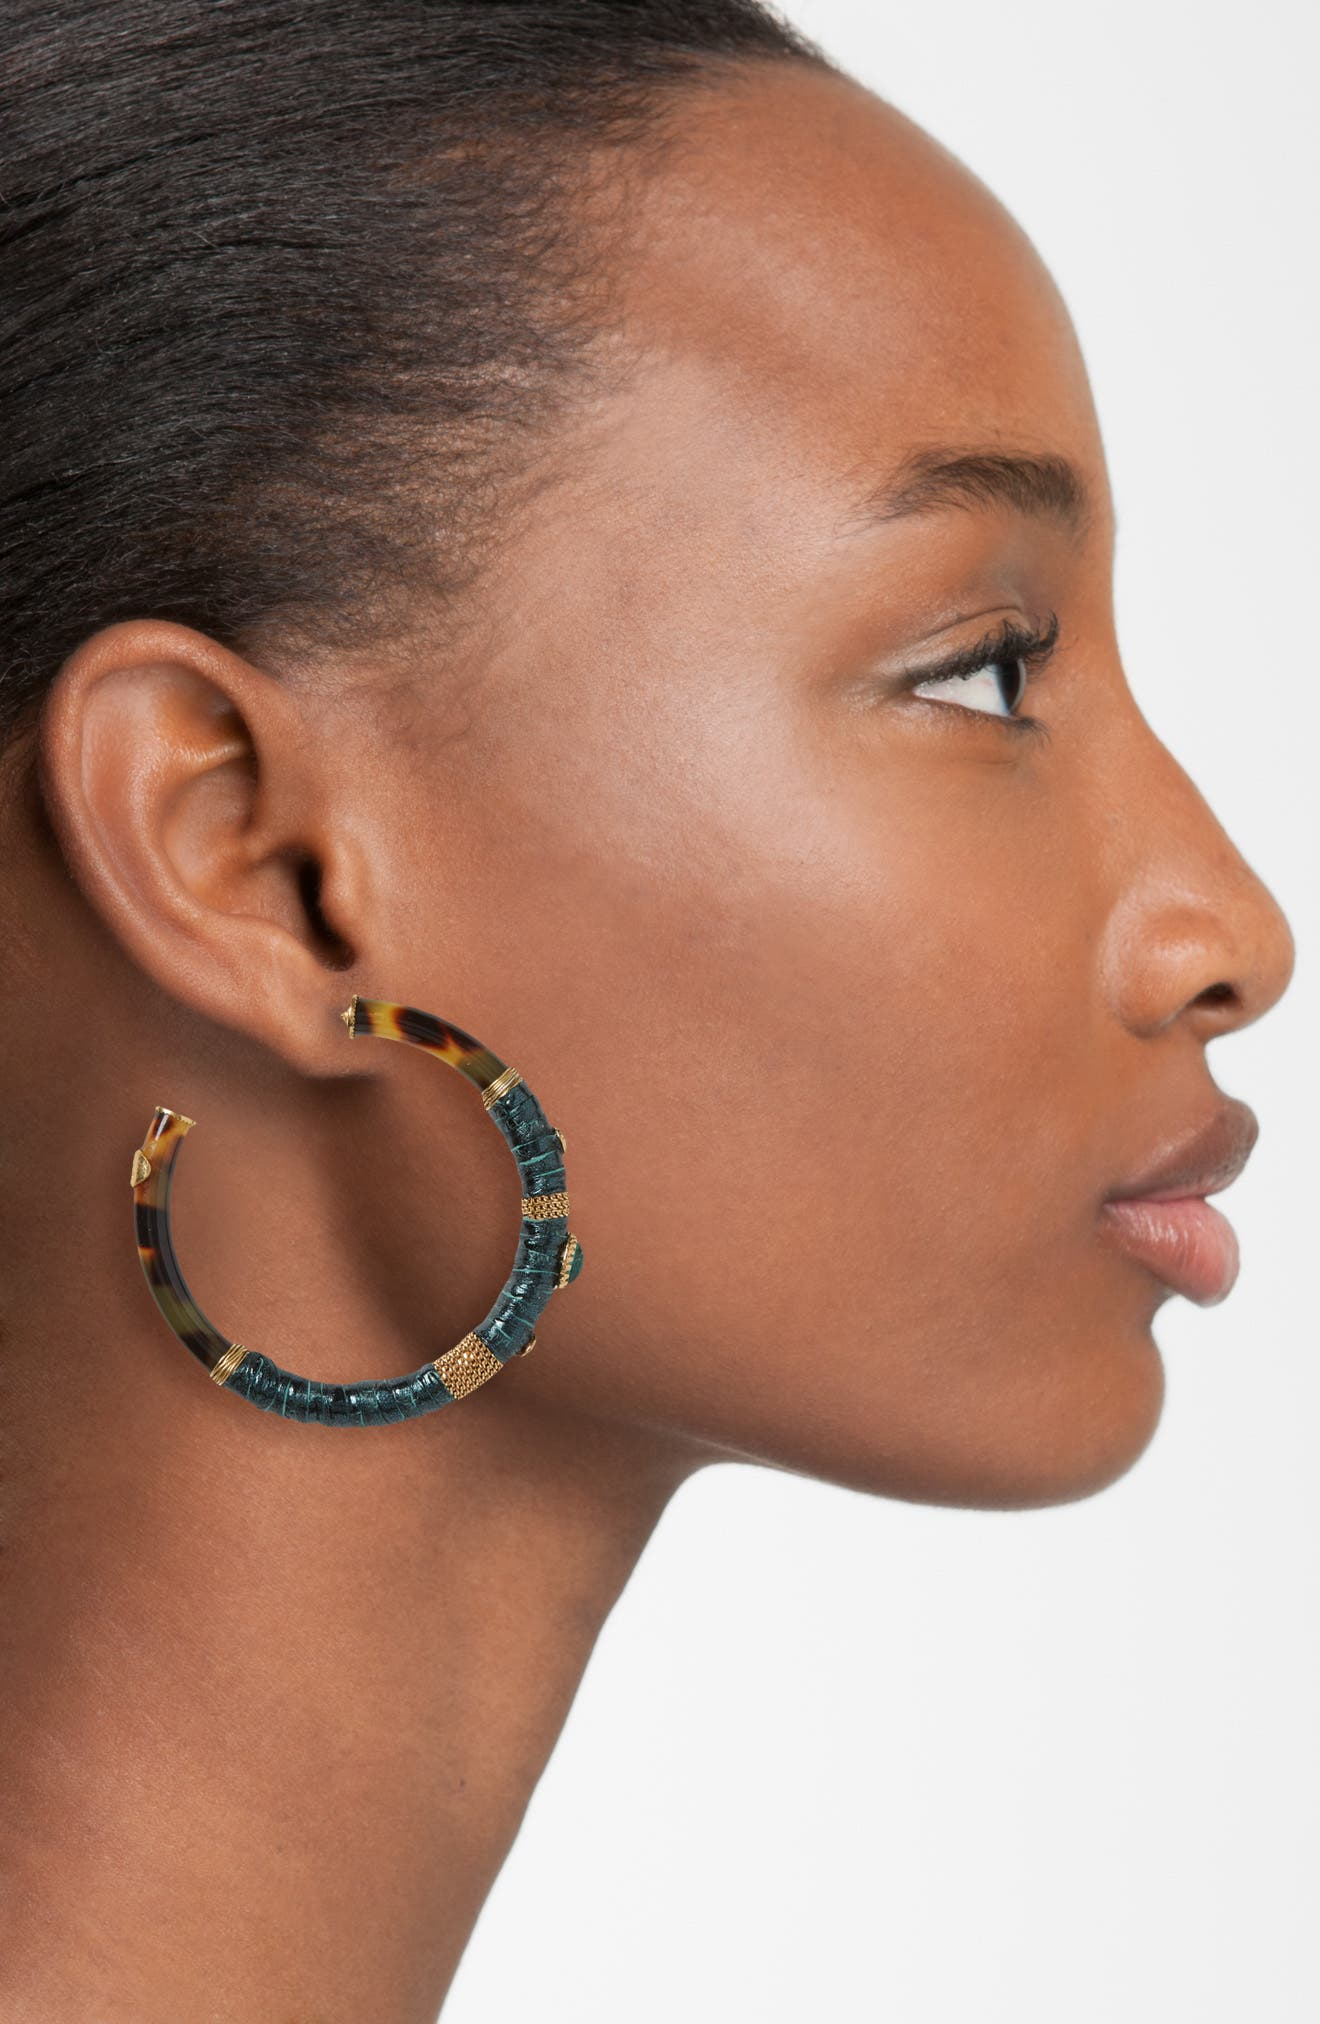 Porto Genuine Snakeskin Hoop Earrings,                             Alternate thumbnail 2, color,                             300